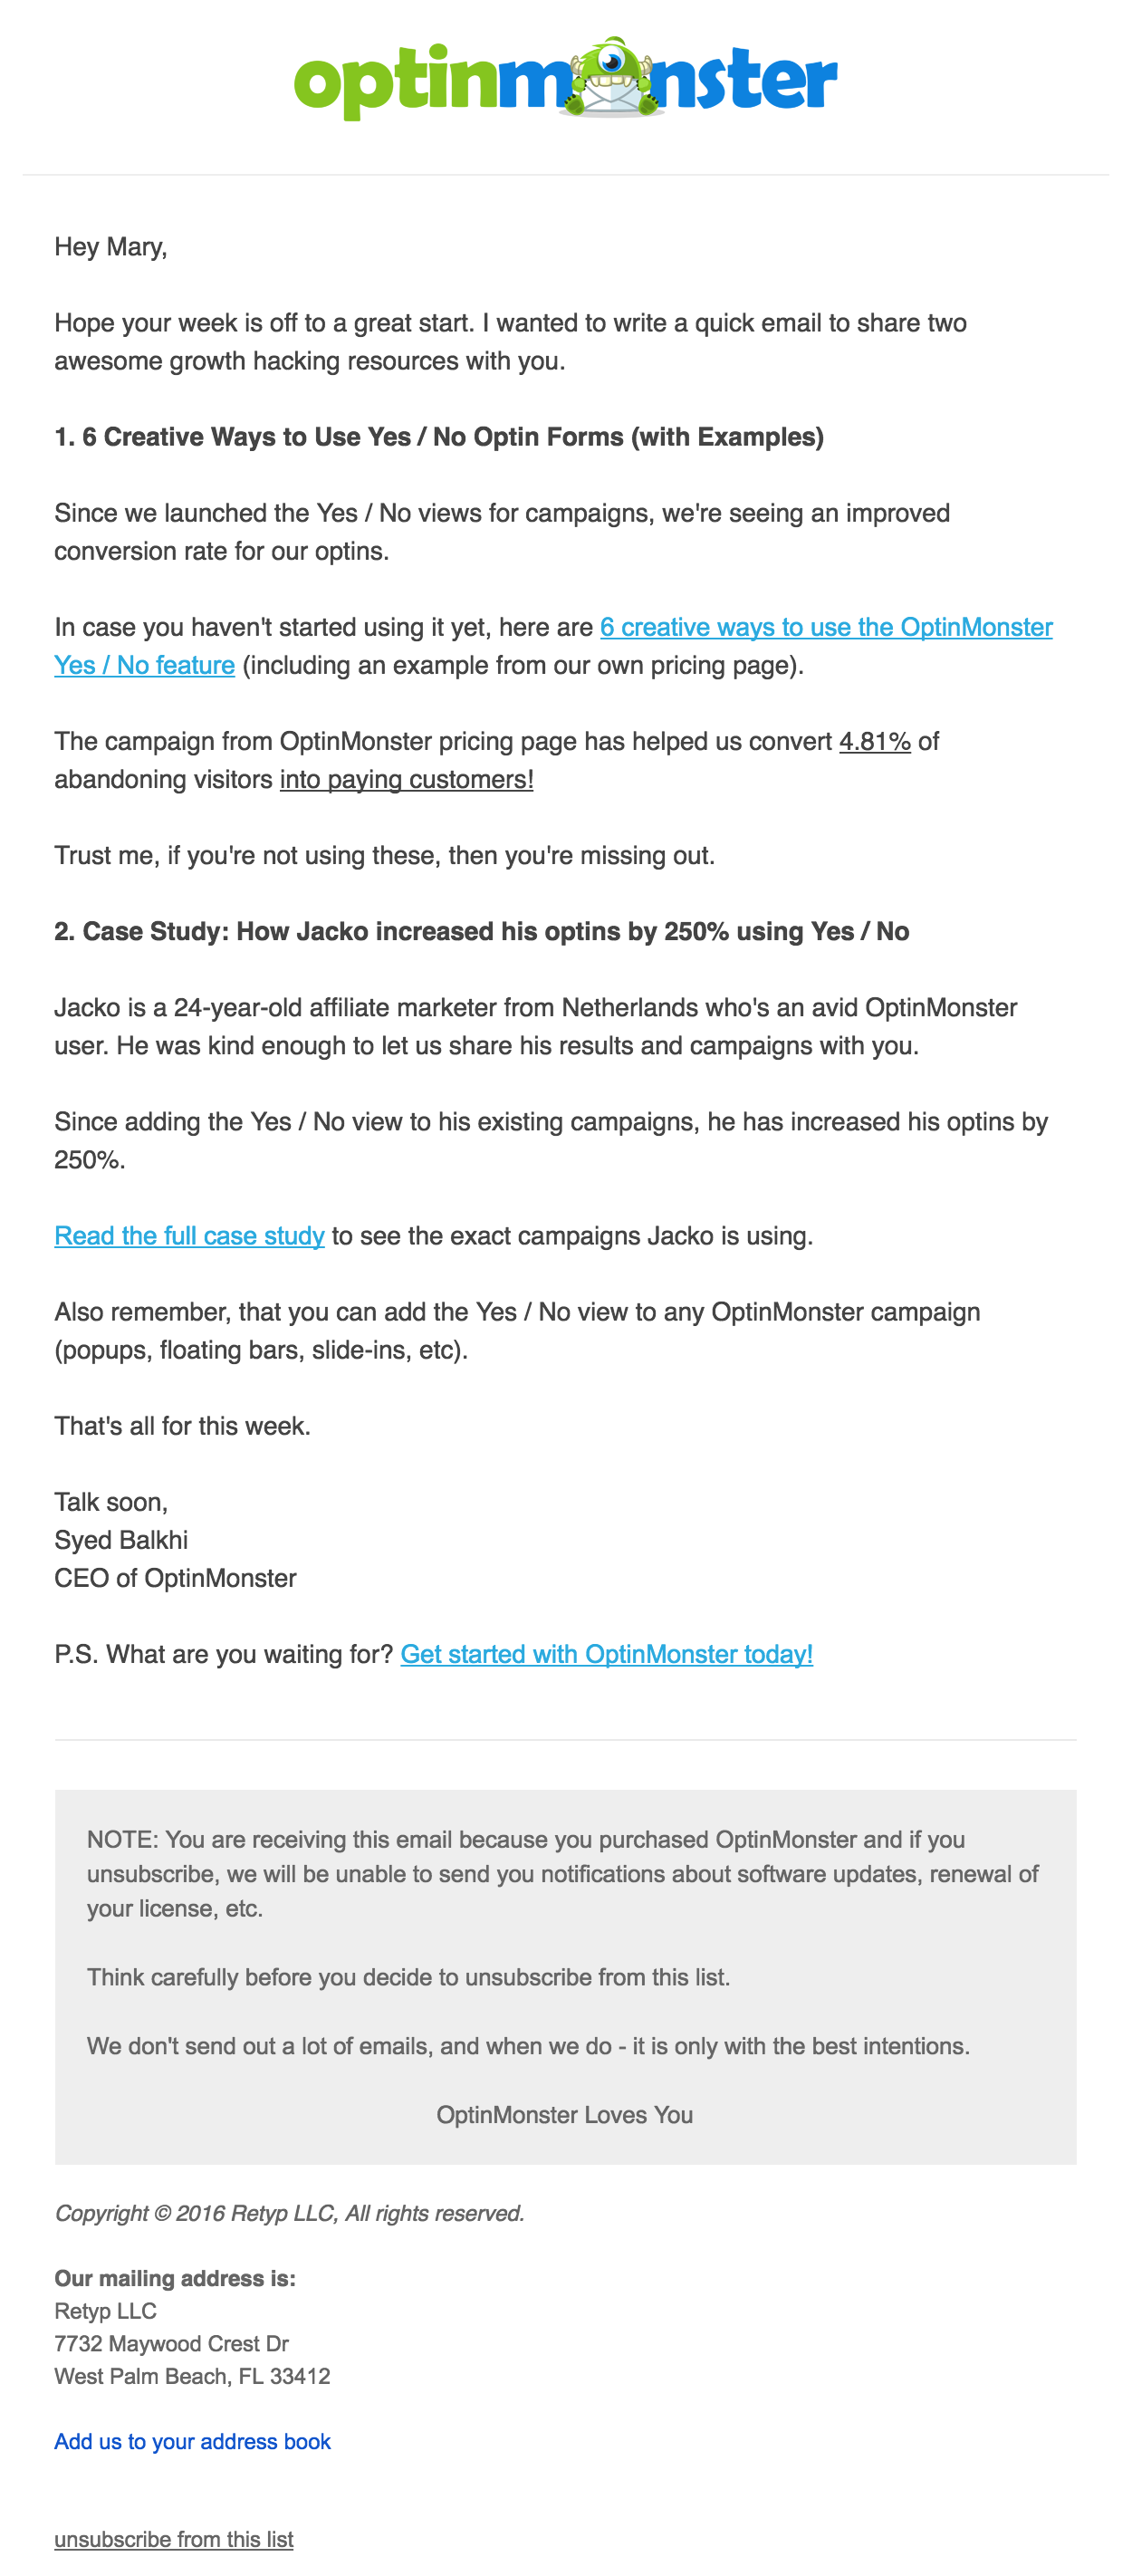 OptinMonster branded email example